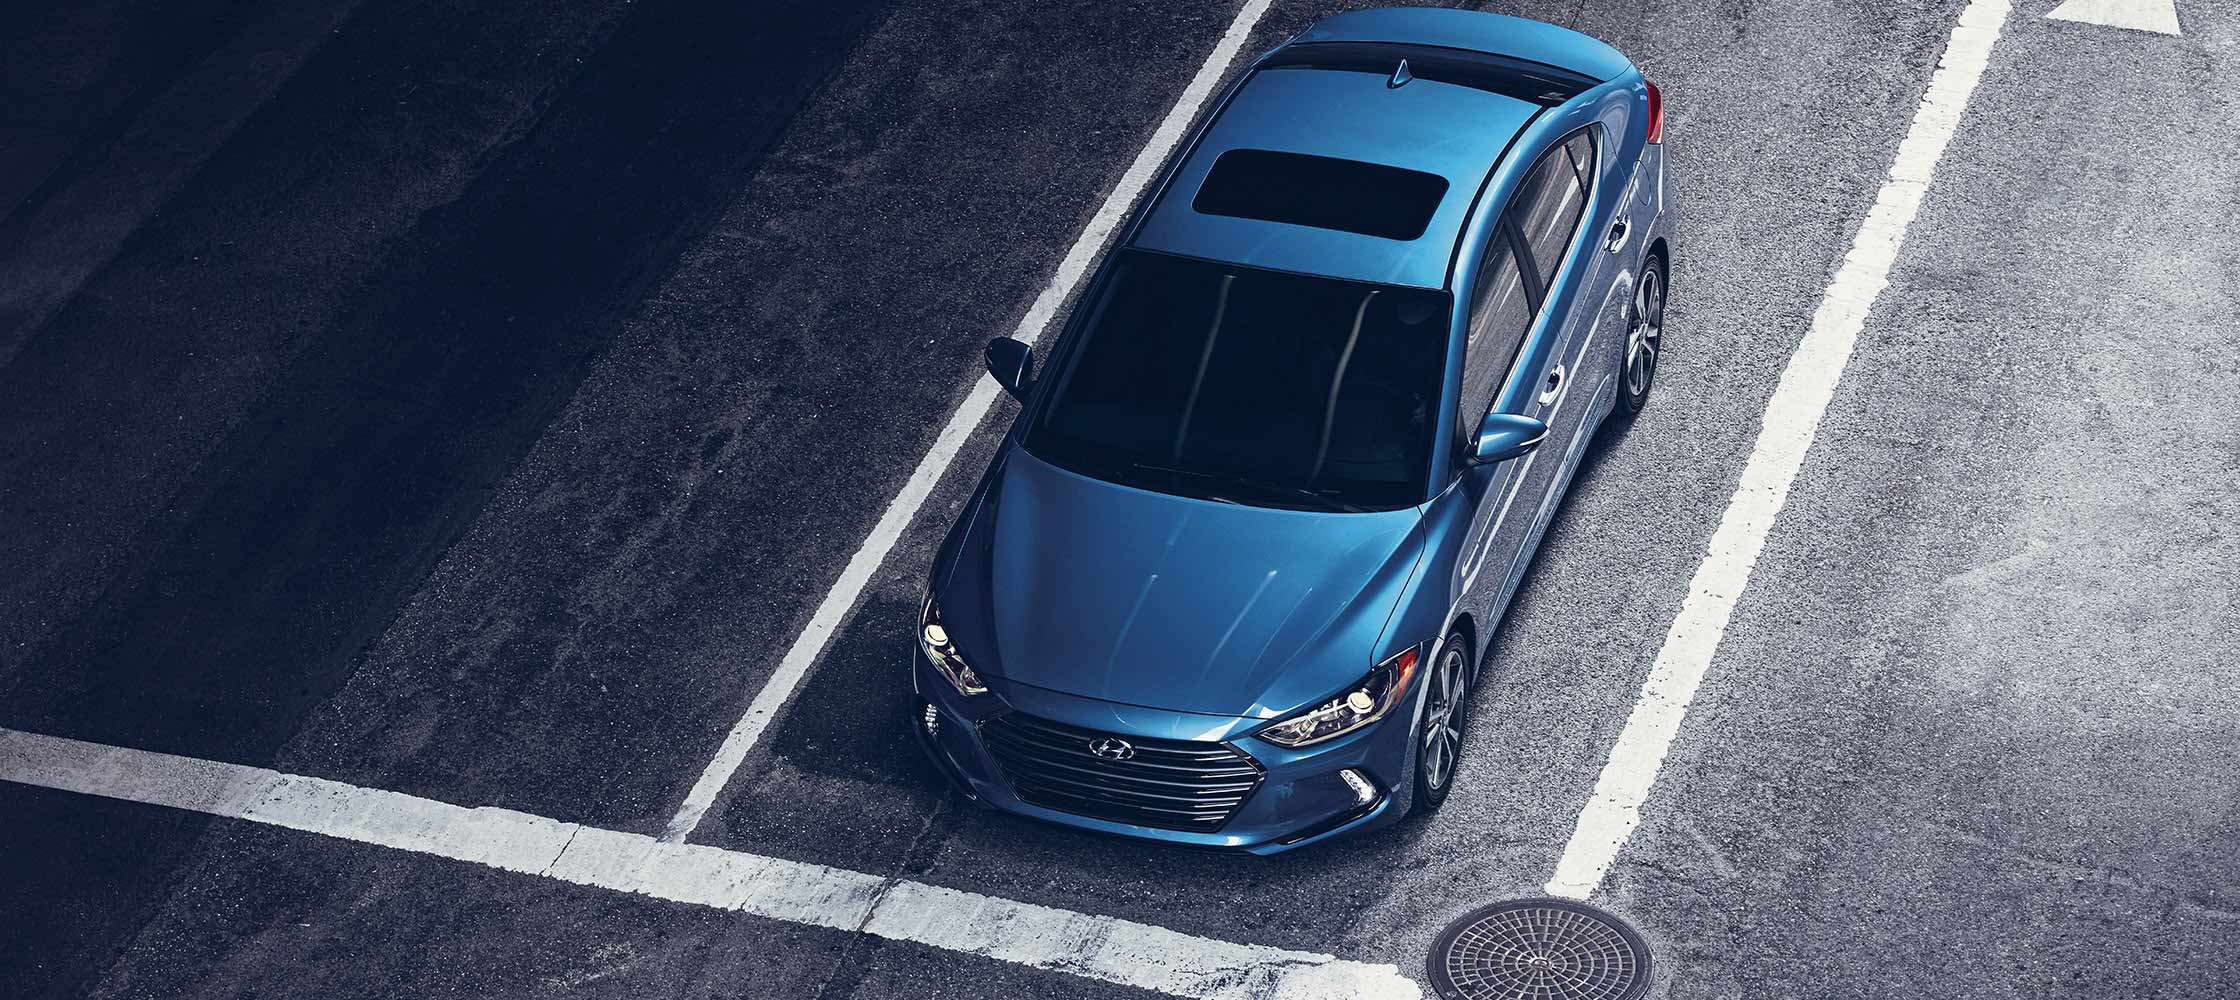 Birds eye view of blue Hyundai Elantra V3 2017 with power sunroof